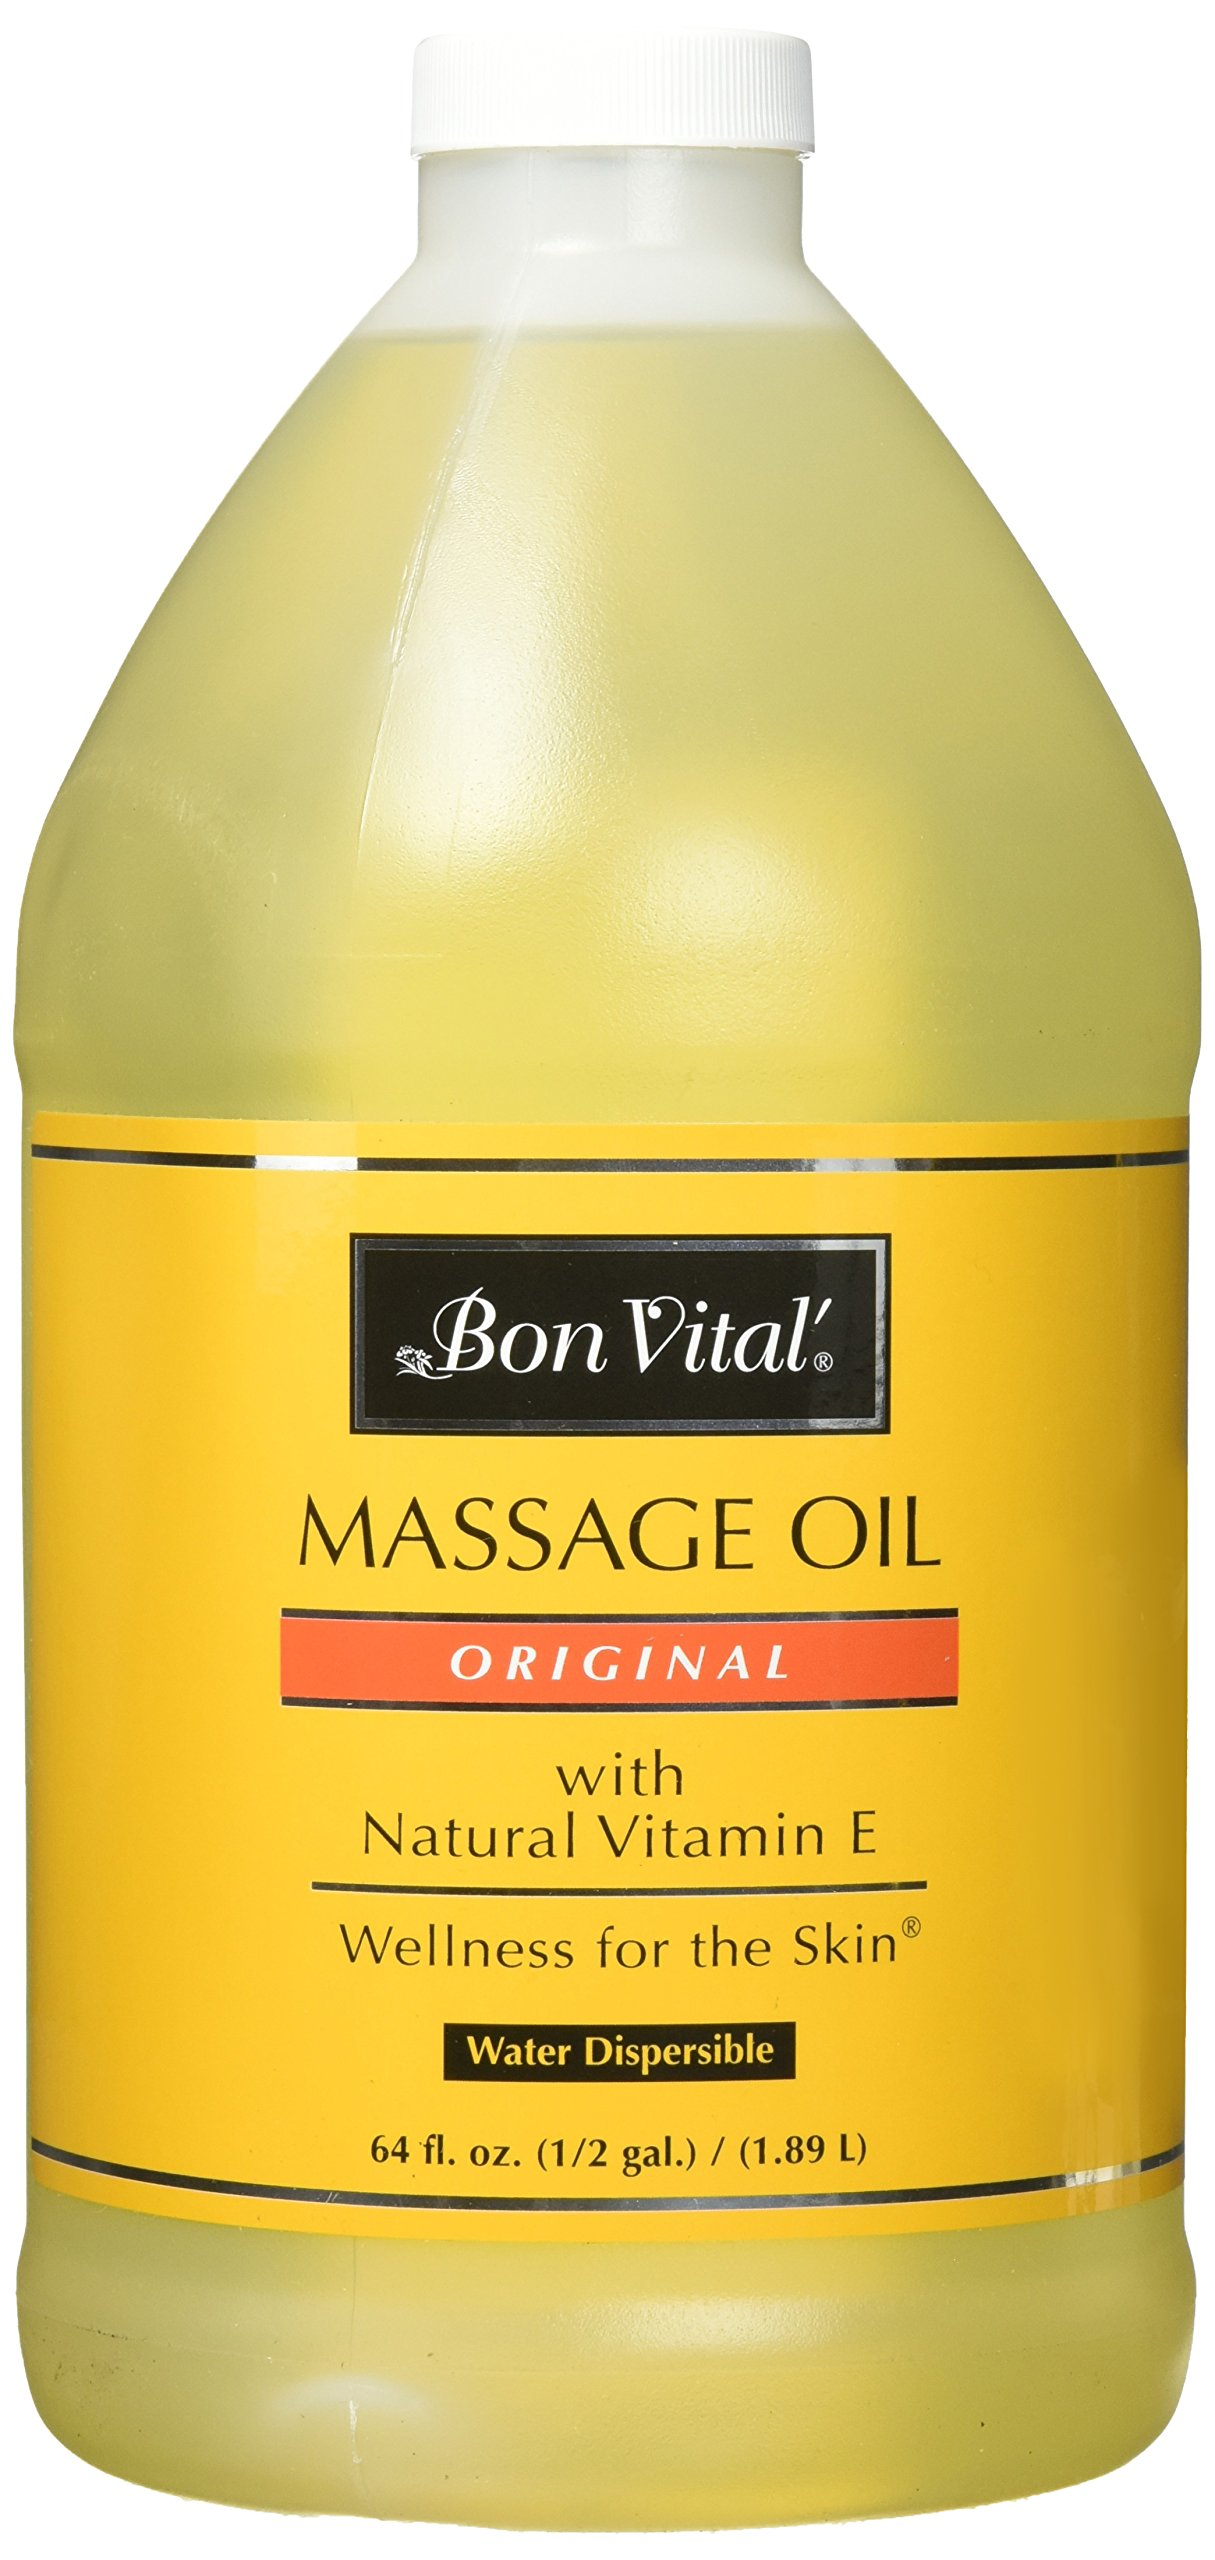 Bon Vital'  Original Massage Oil for a Versatile Massage Foundation to Relax Sore Muscles & Repair Dry Skin,  Most Requested Best Massage Oil on Market, Unbeatable Consistency and Quality, 1/2 Gallon